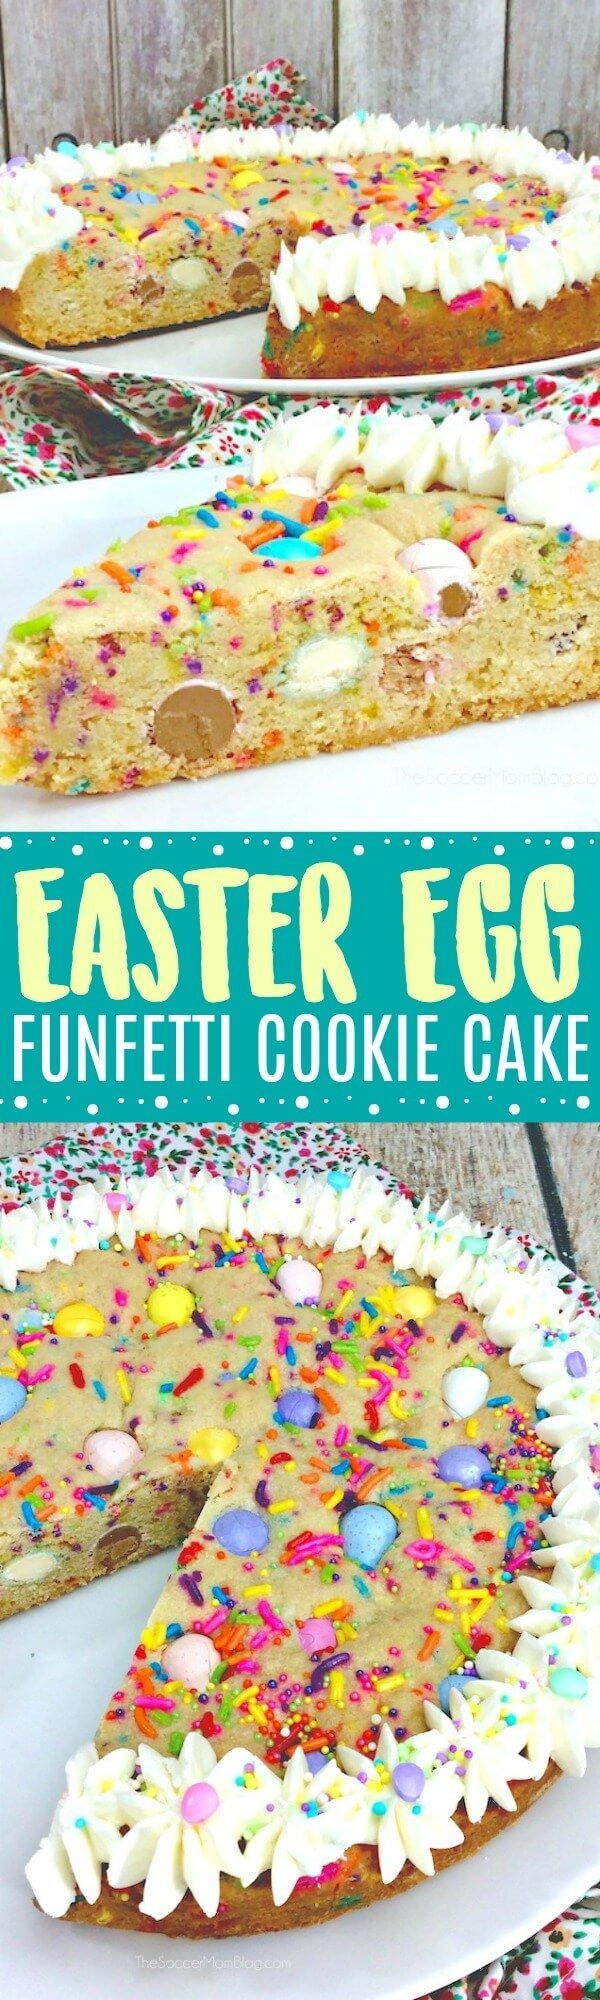 This Easter Funfetti Cookie Cake is just LOADED with goodies!! Thick, chewy cookie stuffed with chocolate candy and sprinkles - perfect for parties, birthdays, or any occasion that calls for some color! #Easter #cookie #dessert via @soccermomblog